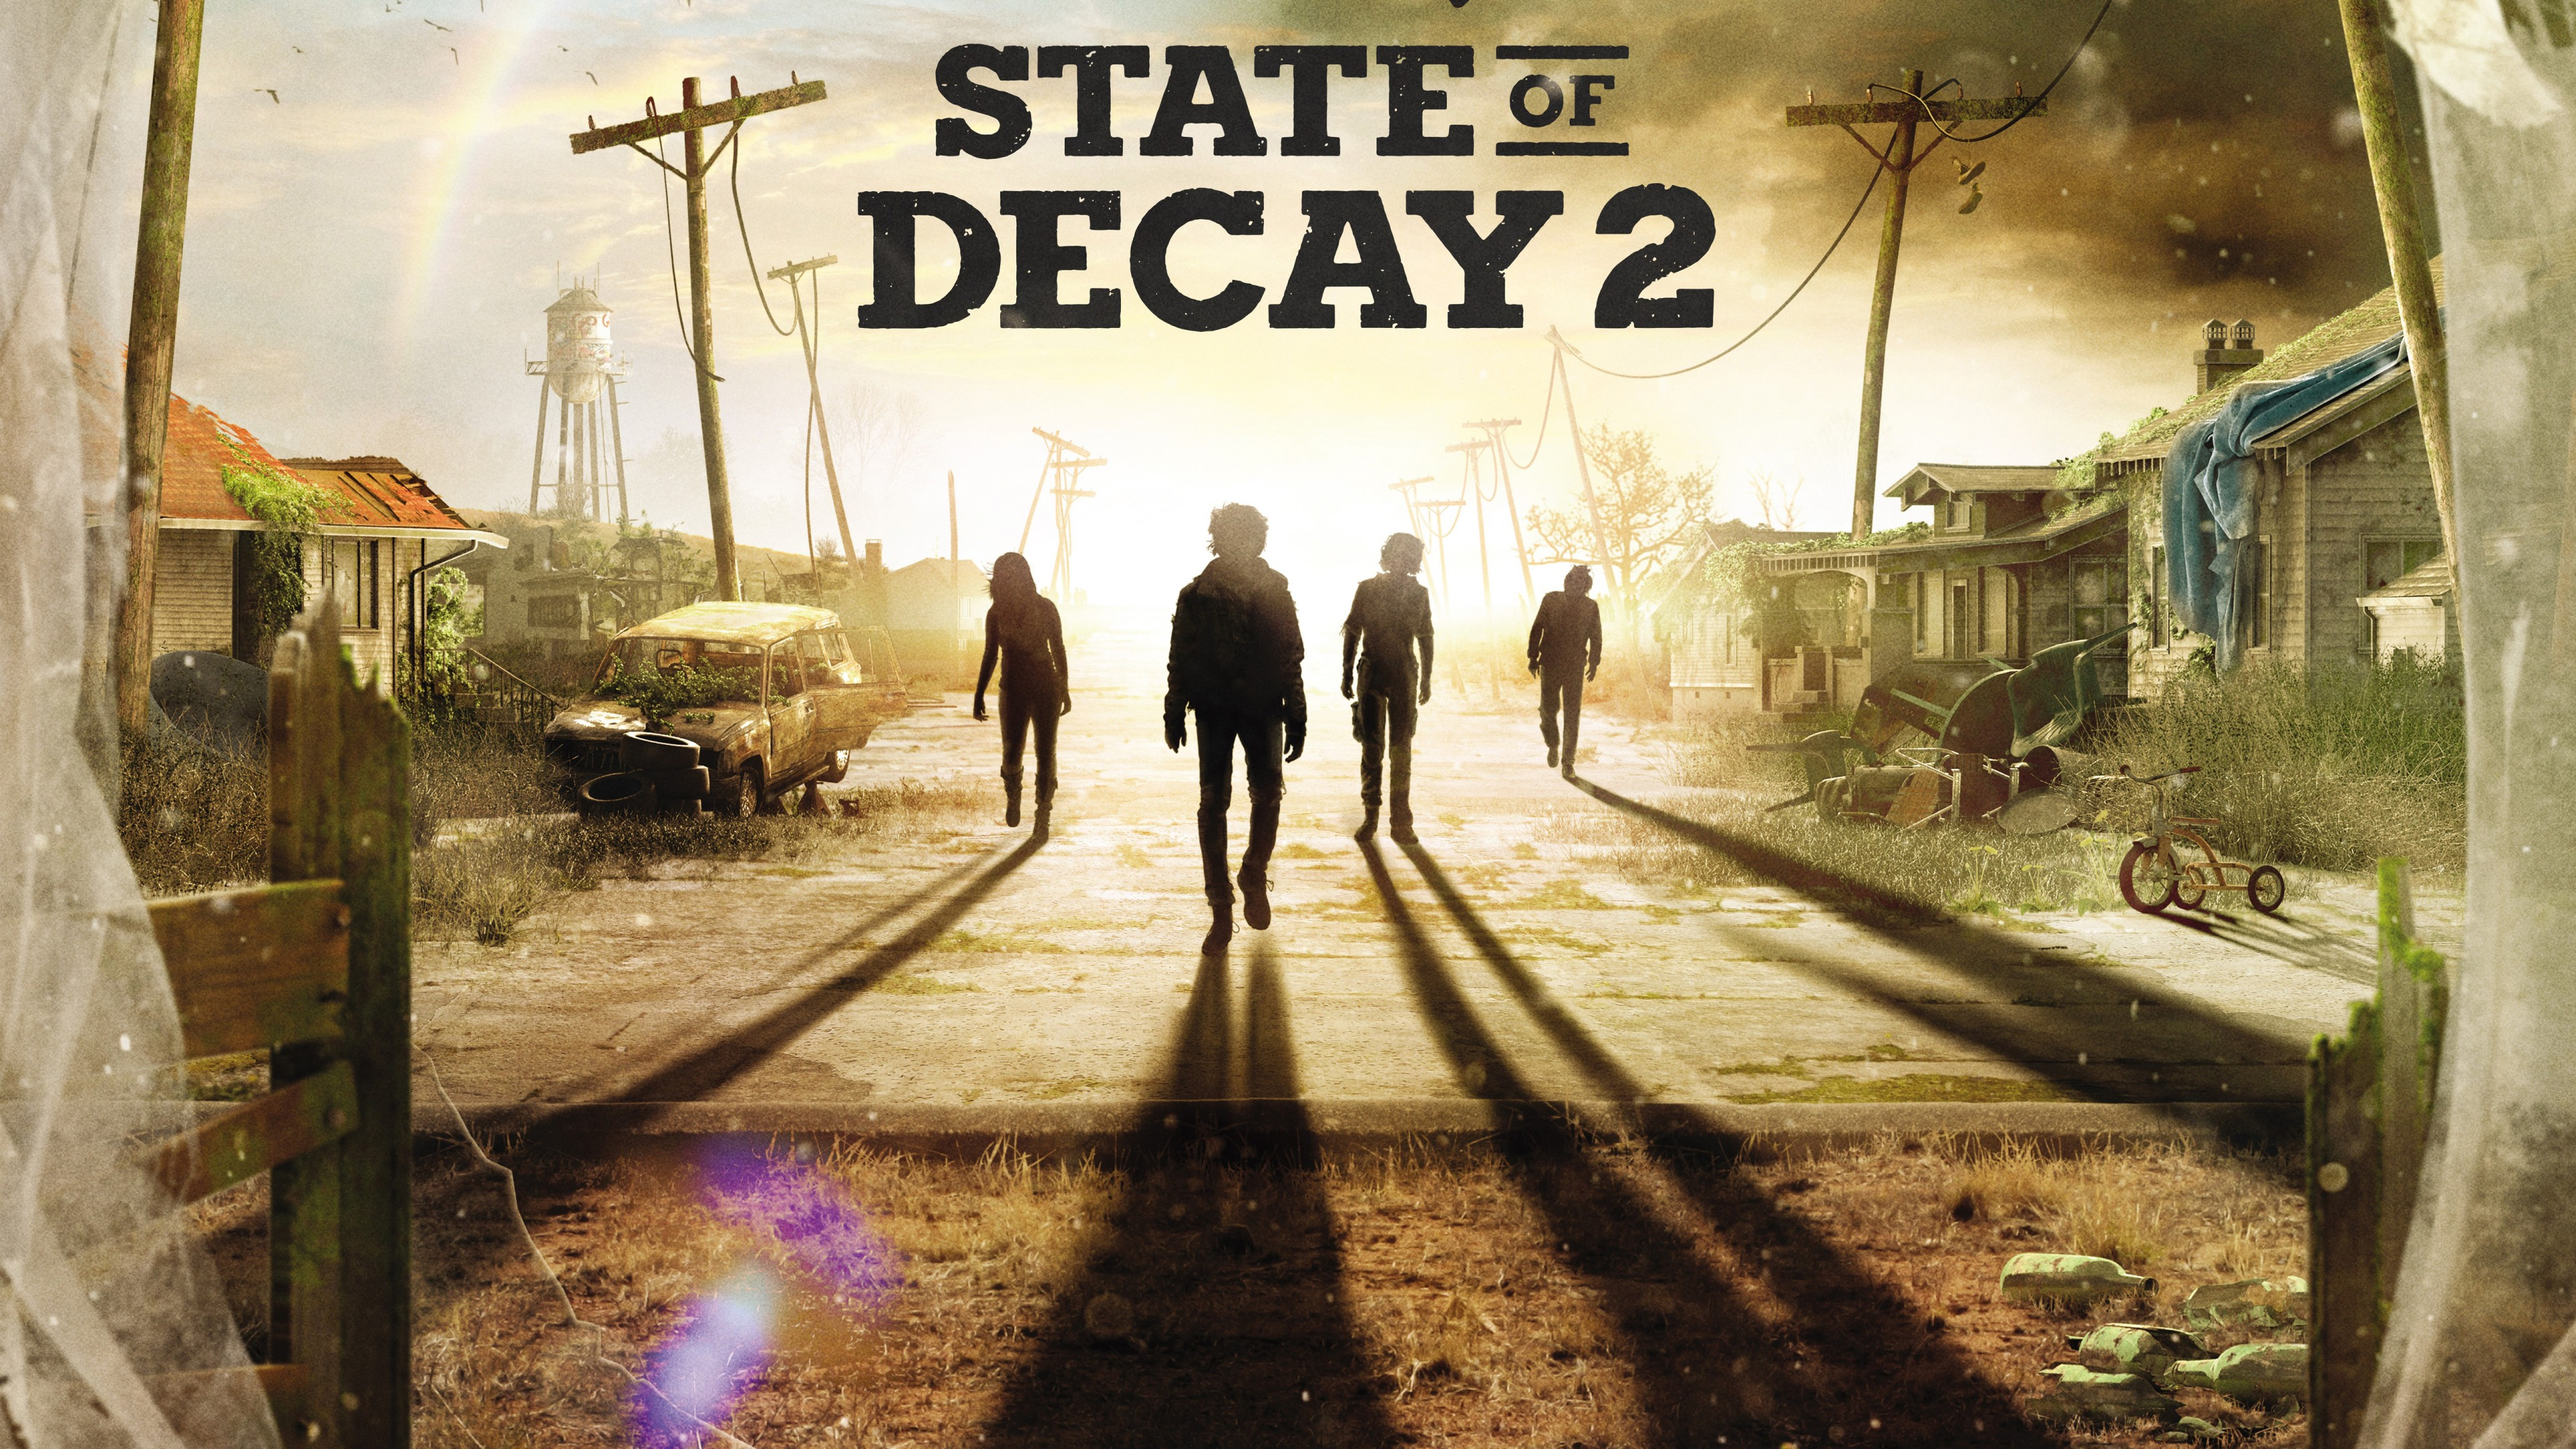 Iphone 6 Beach Wallpaper State Of Decay 2 E3 2017 4k Wallpapers Hd Wallpapers